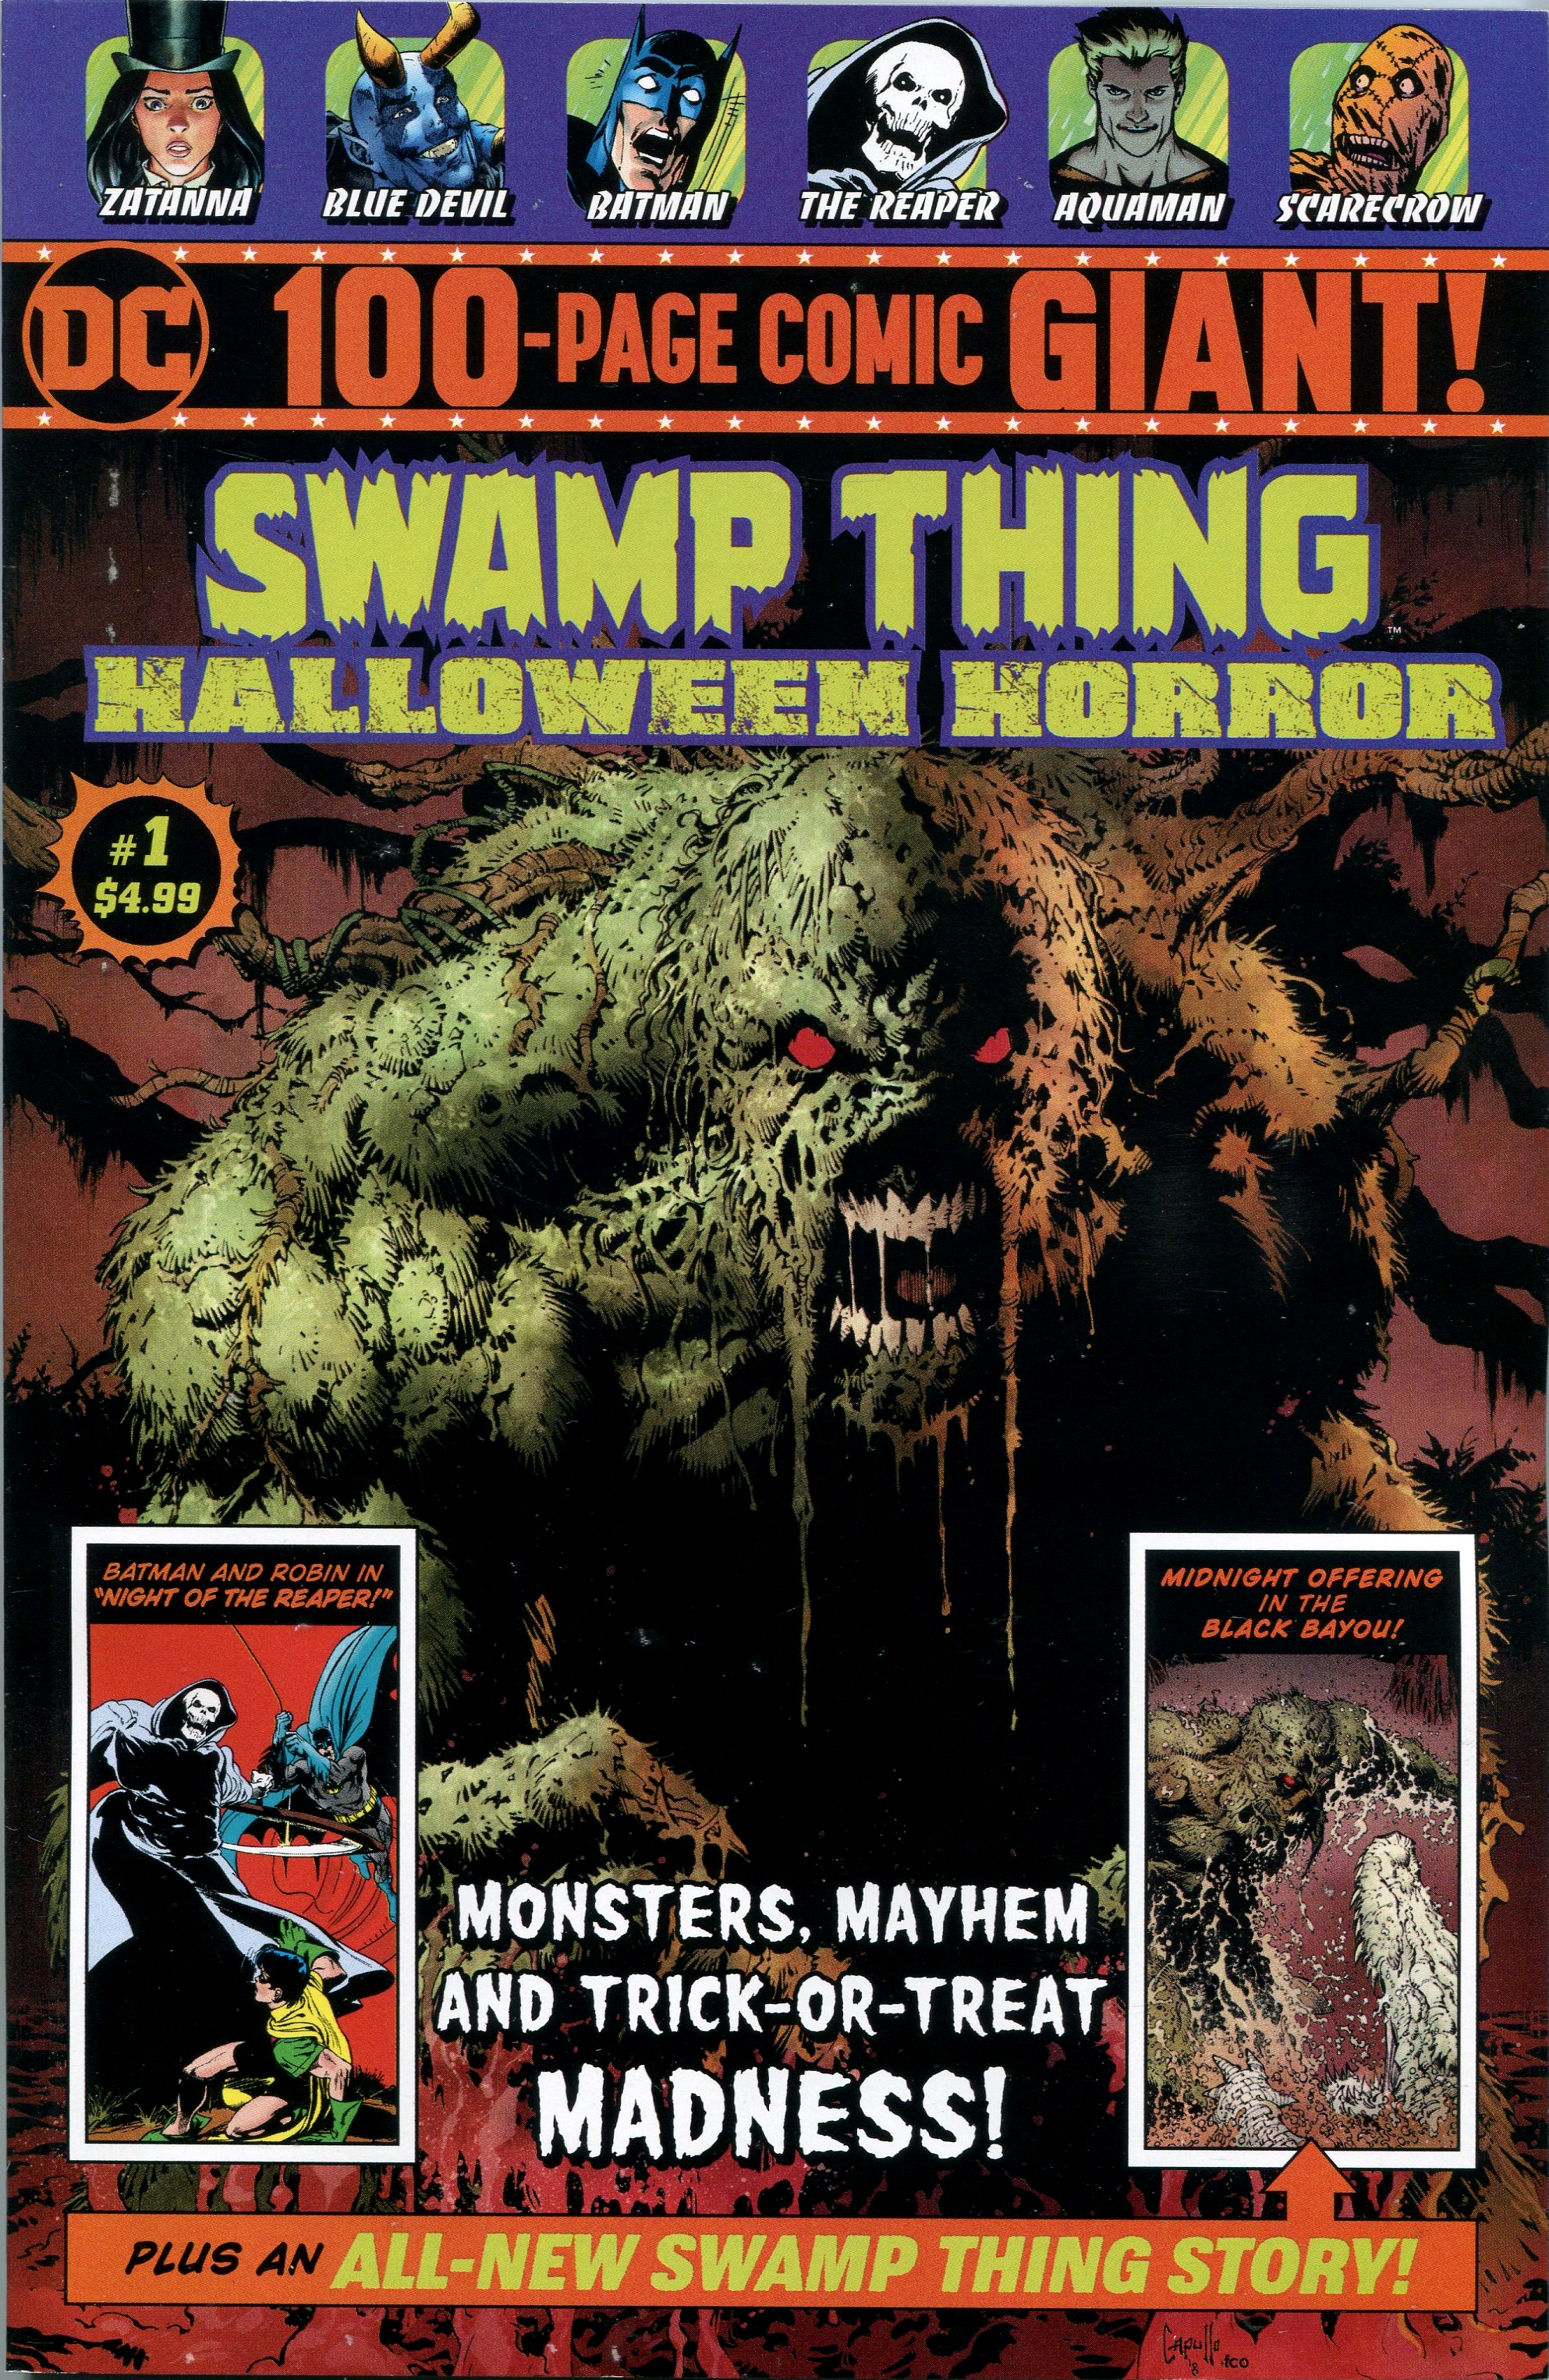 Swamp Thing Halloween Horror Giant Vol 1 1